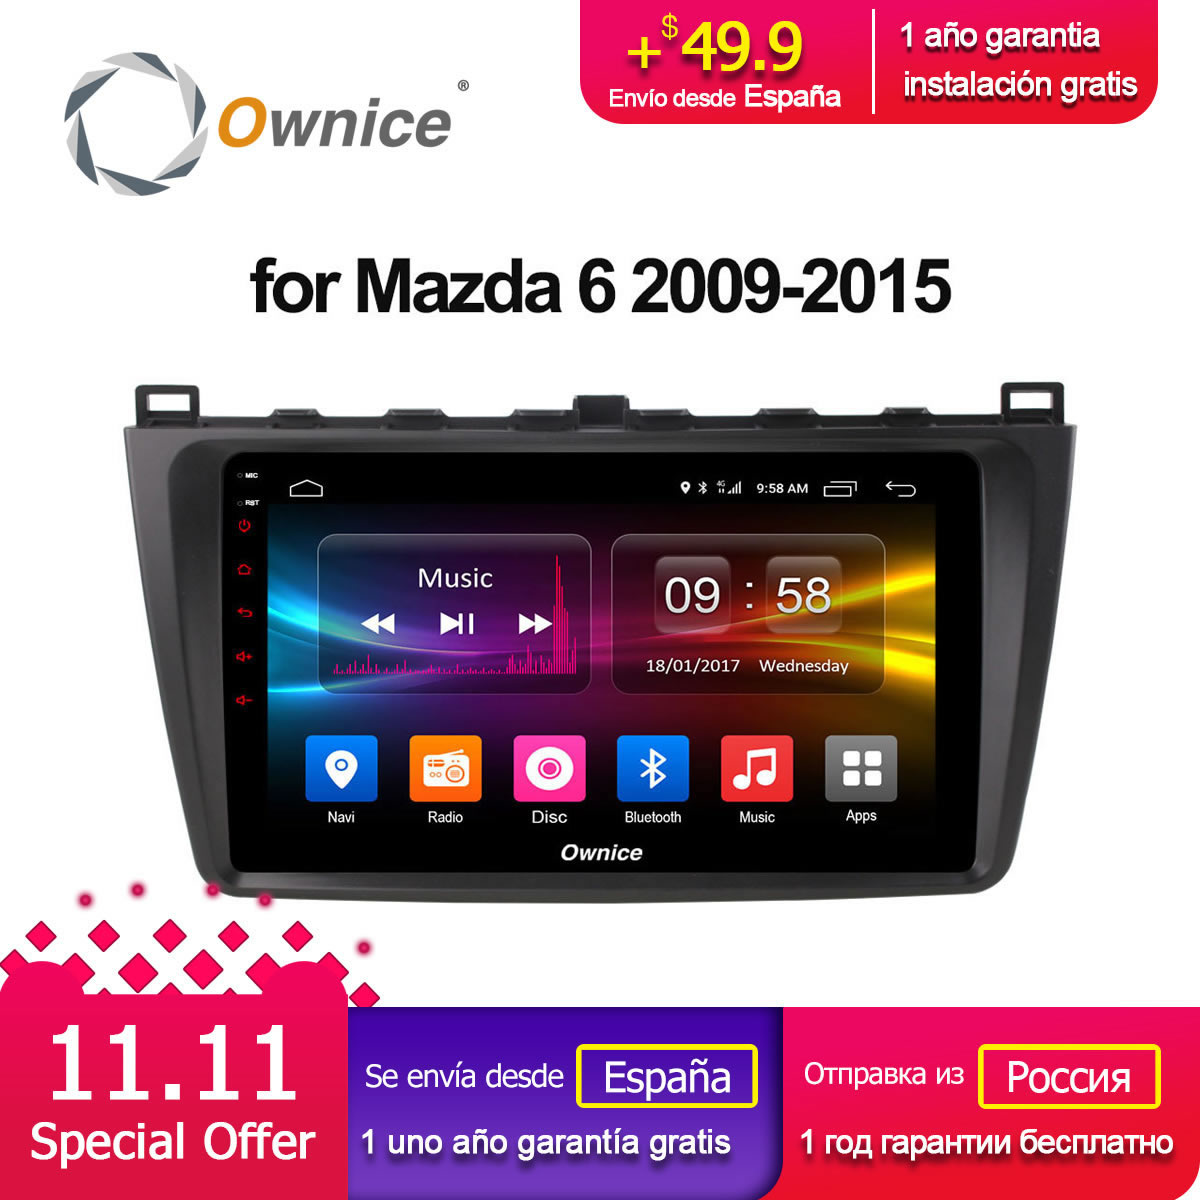 Ownice C500+ G10 Octa Core 2GB RAM 32G ROM Android car dvd 8.1 gps For Mazda 6 Summit 2009 - 2015 wifi 4G LTE Radio DAB+ DVR ownice c500 g10 octa core 2gb ram 32g rom android car dvd 8 1 gps for mazda 6 summit 2009 2015 wifi 4g lte radio dab dvr